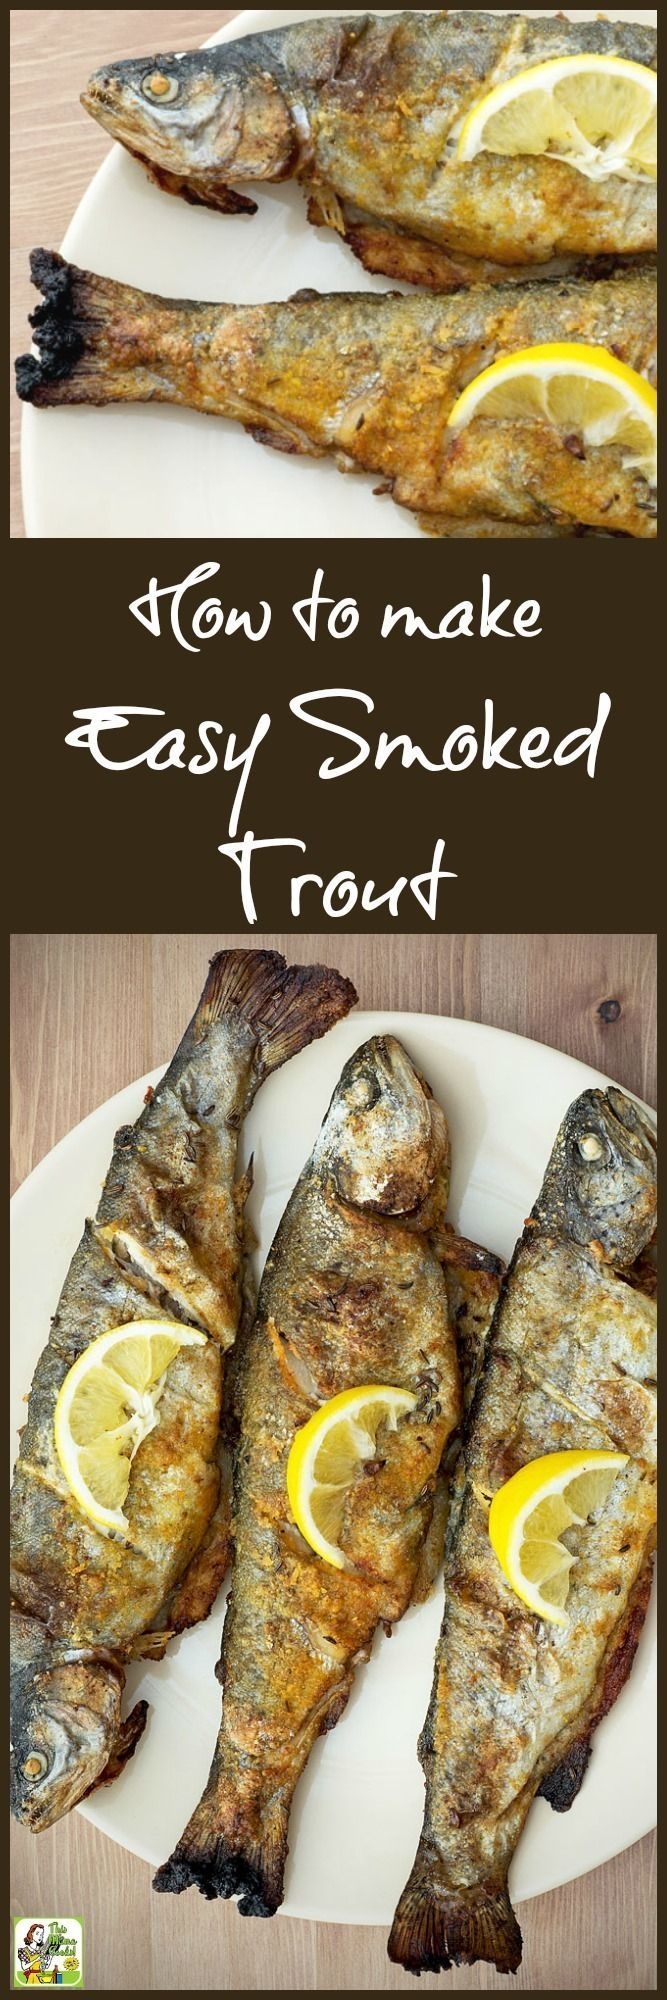 Got fish? Learn how to make smoked trout for dinner or your next fish fry party! It's easier than you think if you have an electric smoker or a grill that you can smoke in. Just make a simple marinade from salad dressing. Once you've tasted smoked trout, you'll never want to cook lake fish another way!